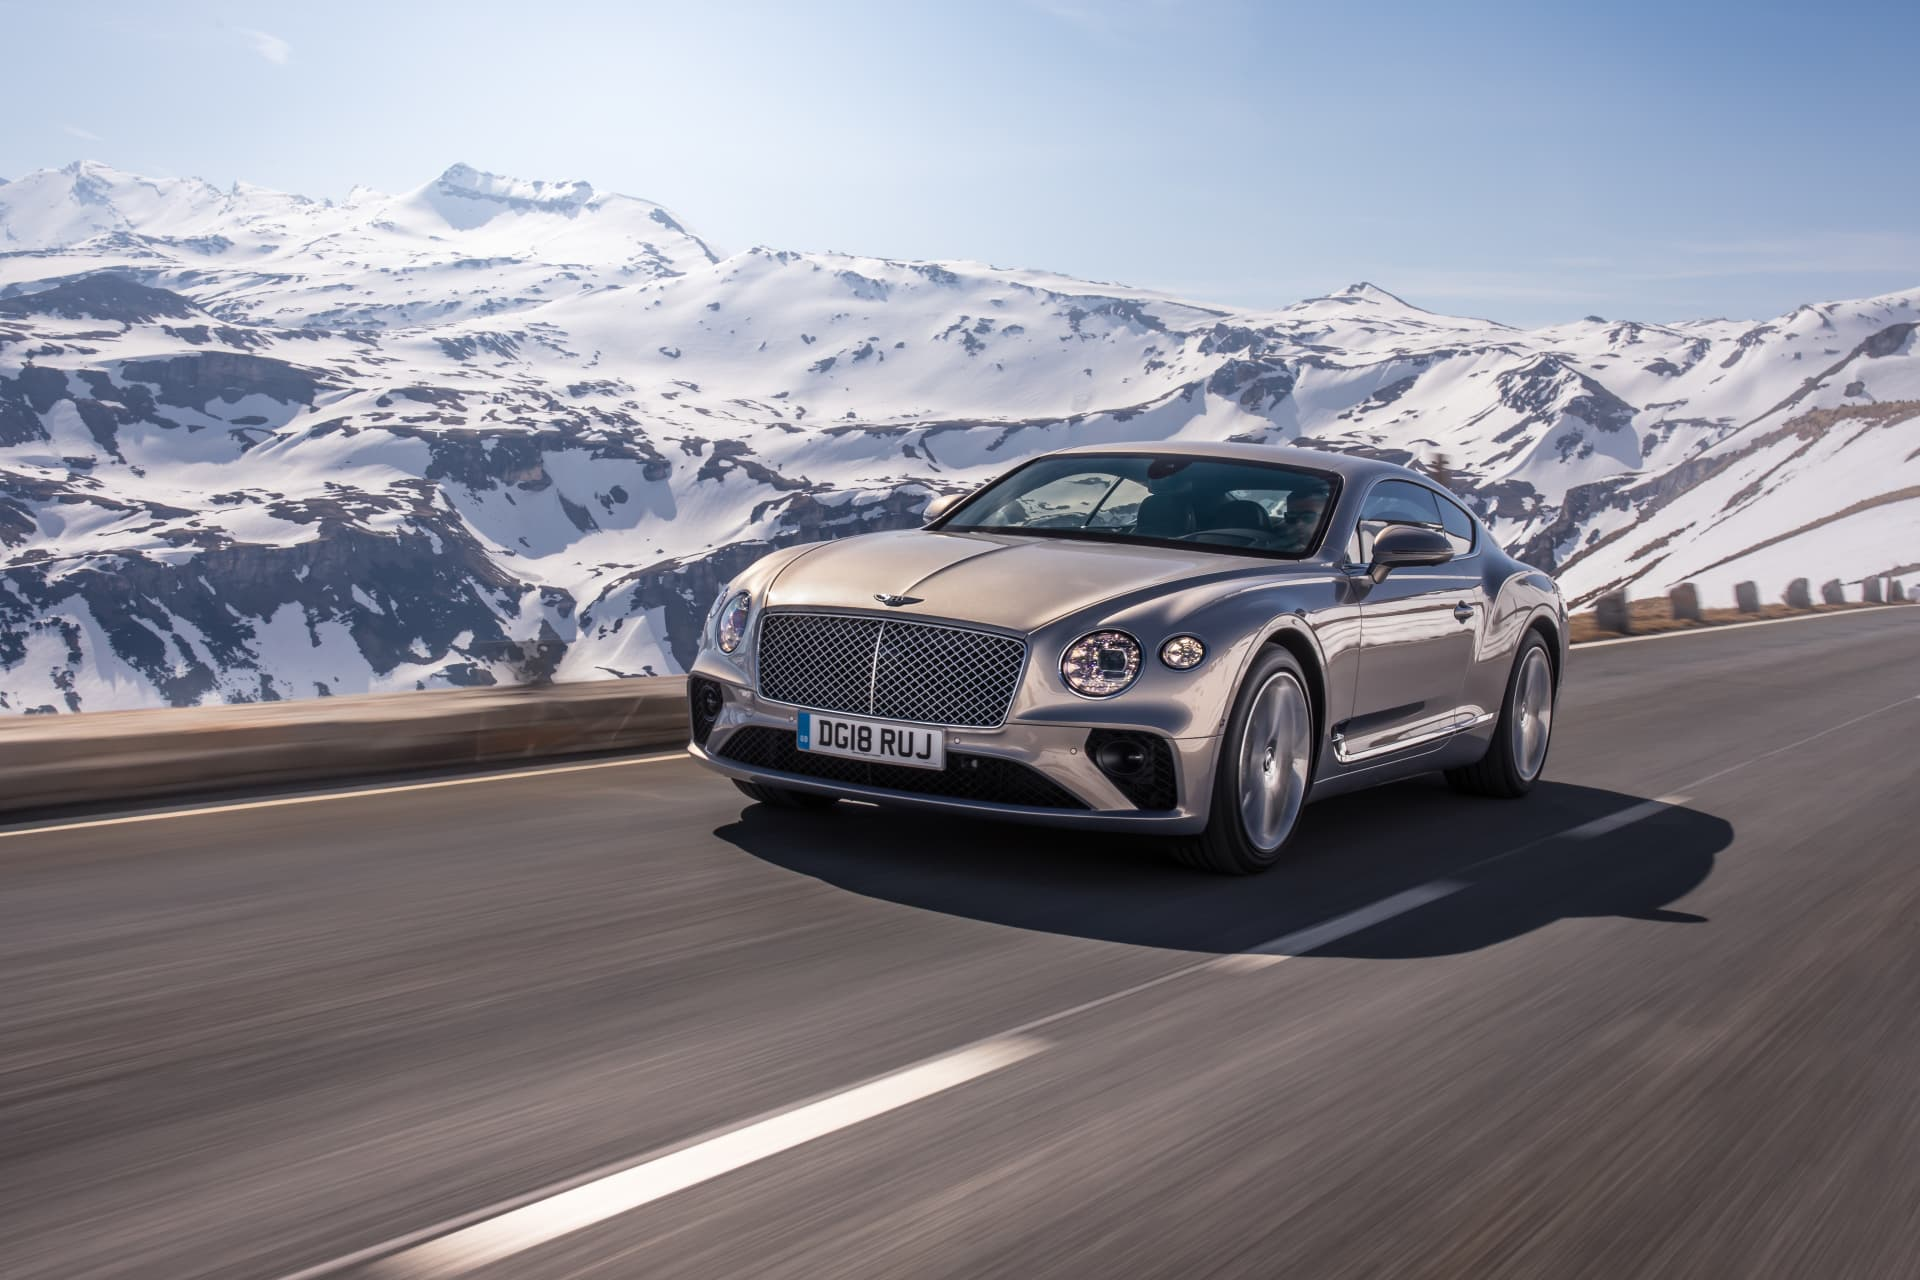 Bentley Continental Gt Extreme Silver 6